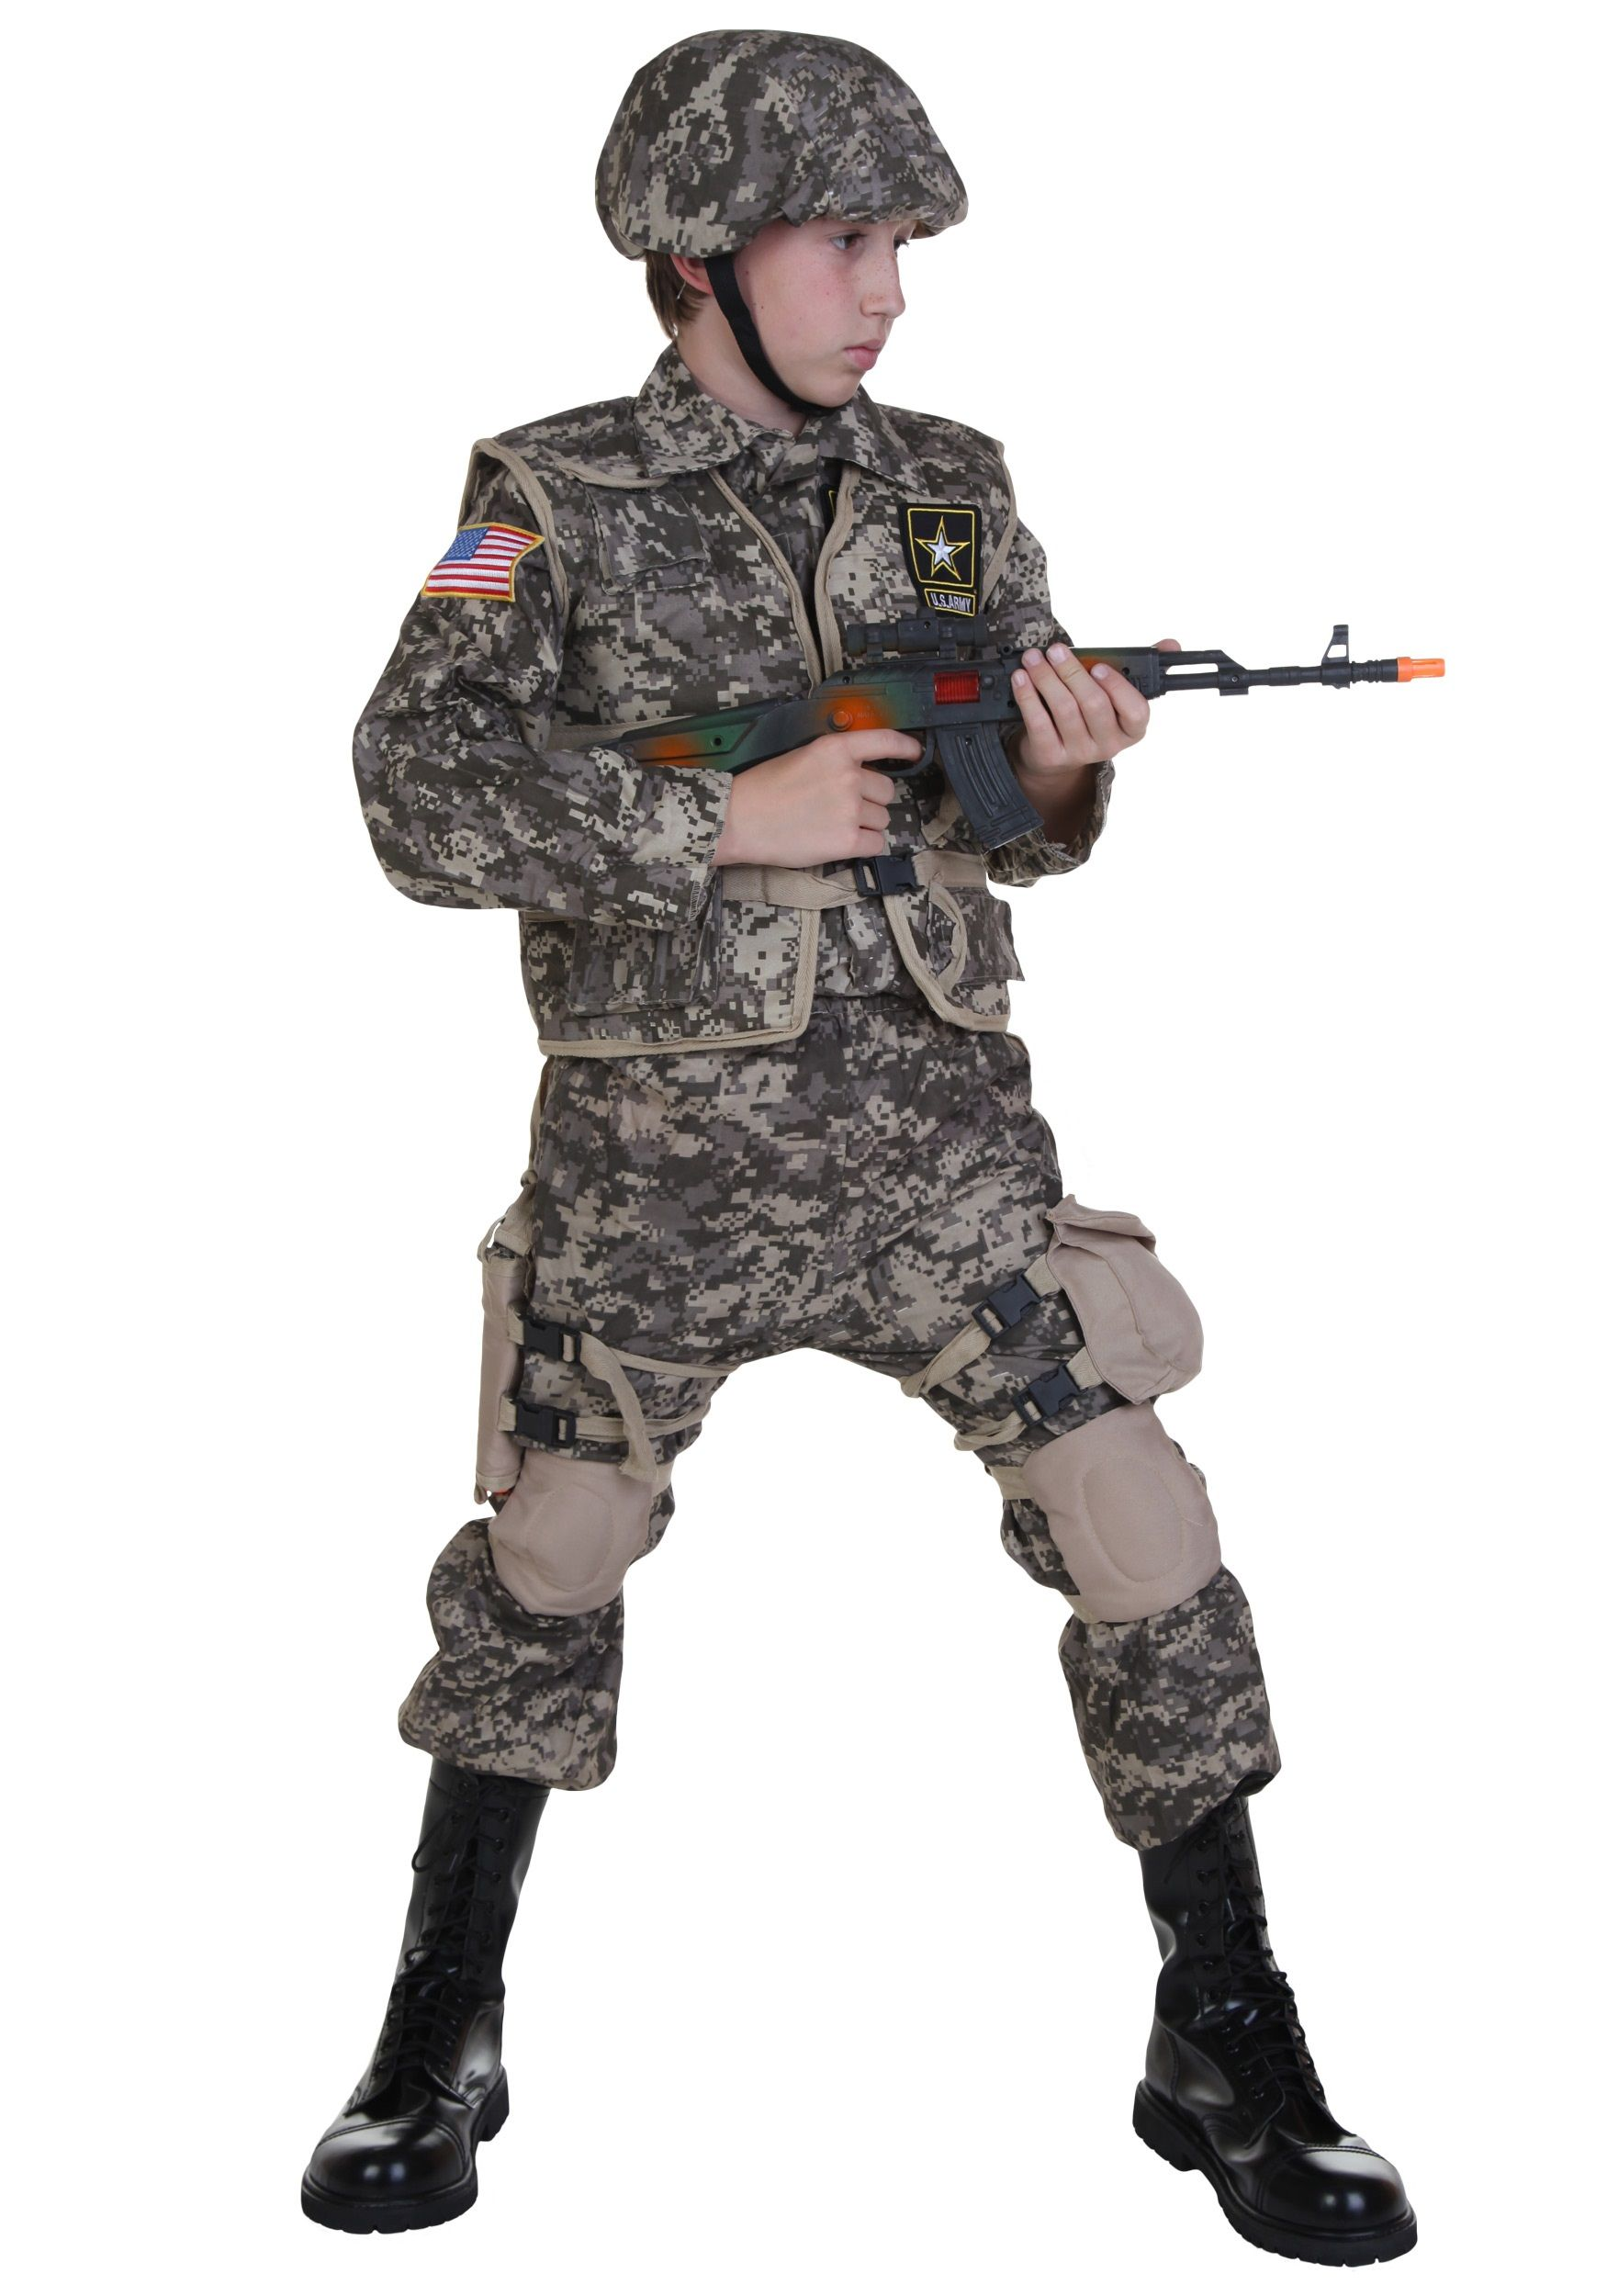 Kids Deluxe U.S. Army Ranger Costume | Dylan | Pinterest | Army ...